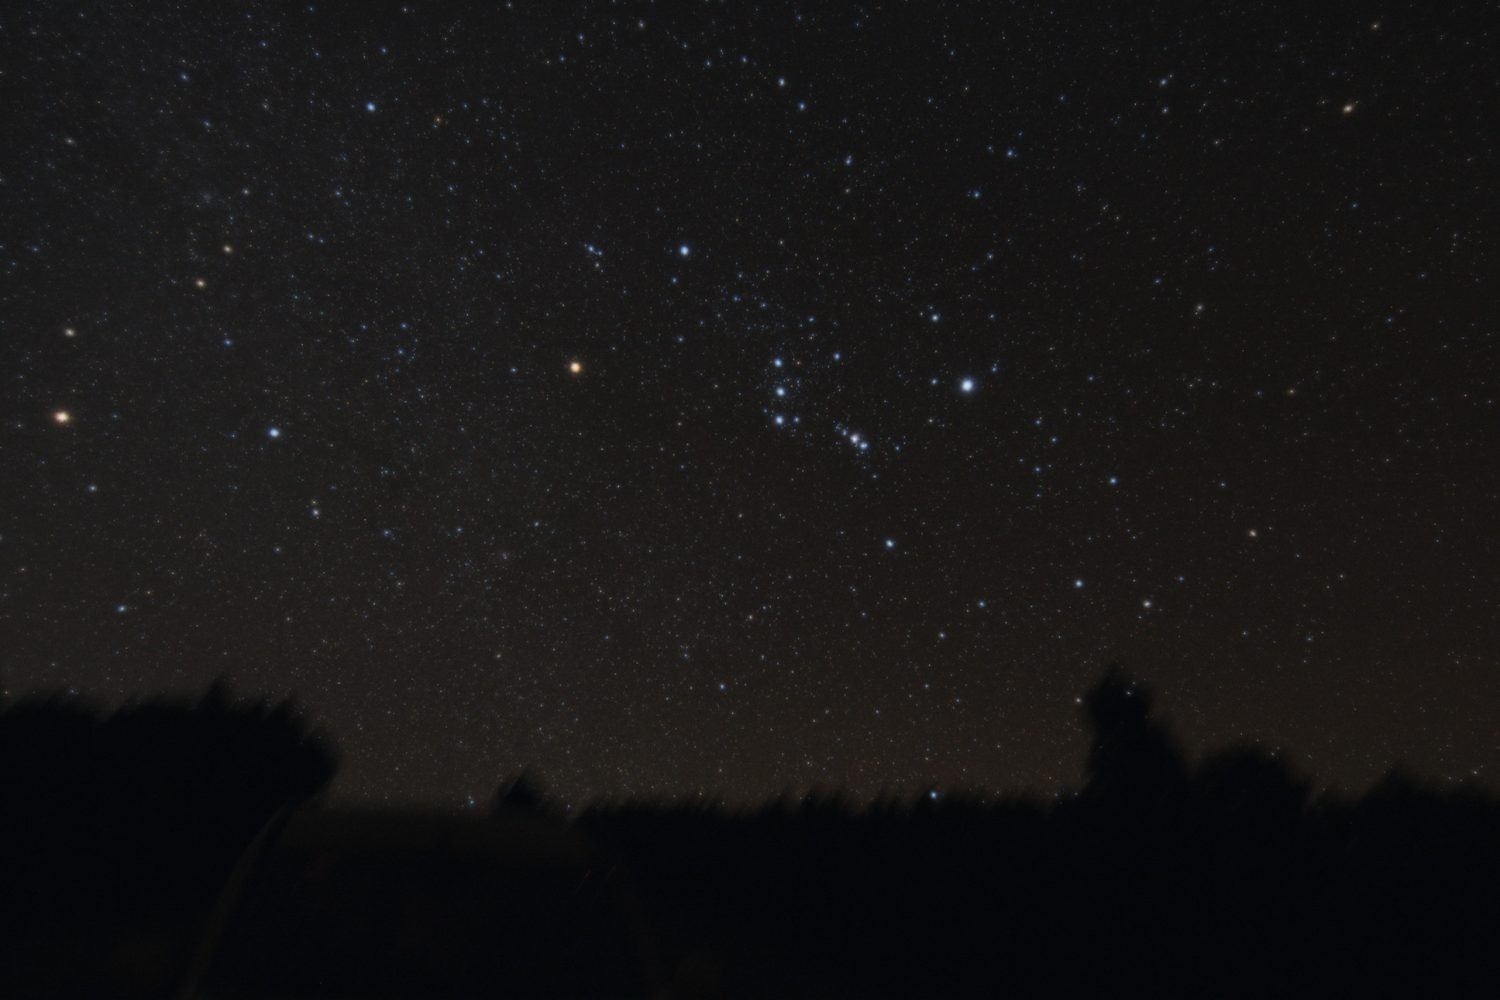 Autumn sees the return of Orion to the night sky. Credit: Bernhard Hubl / CCDGuide.com